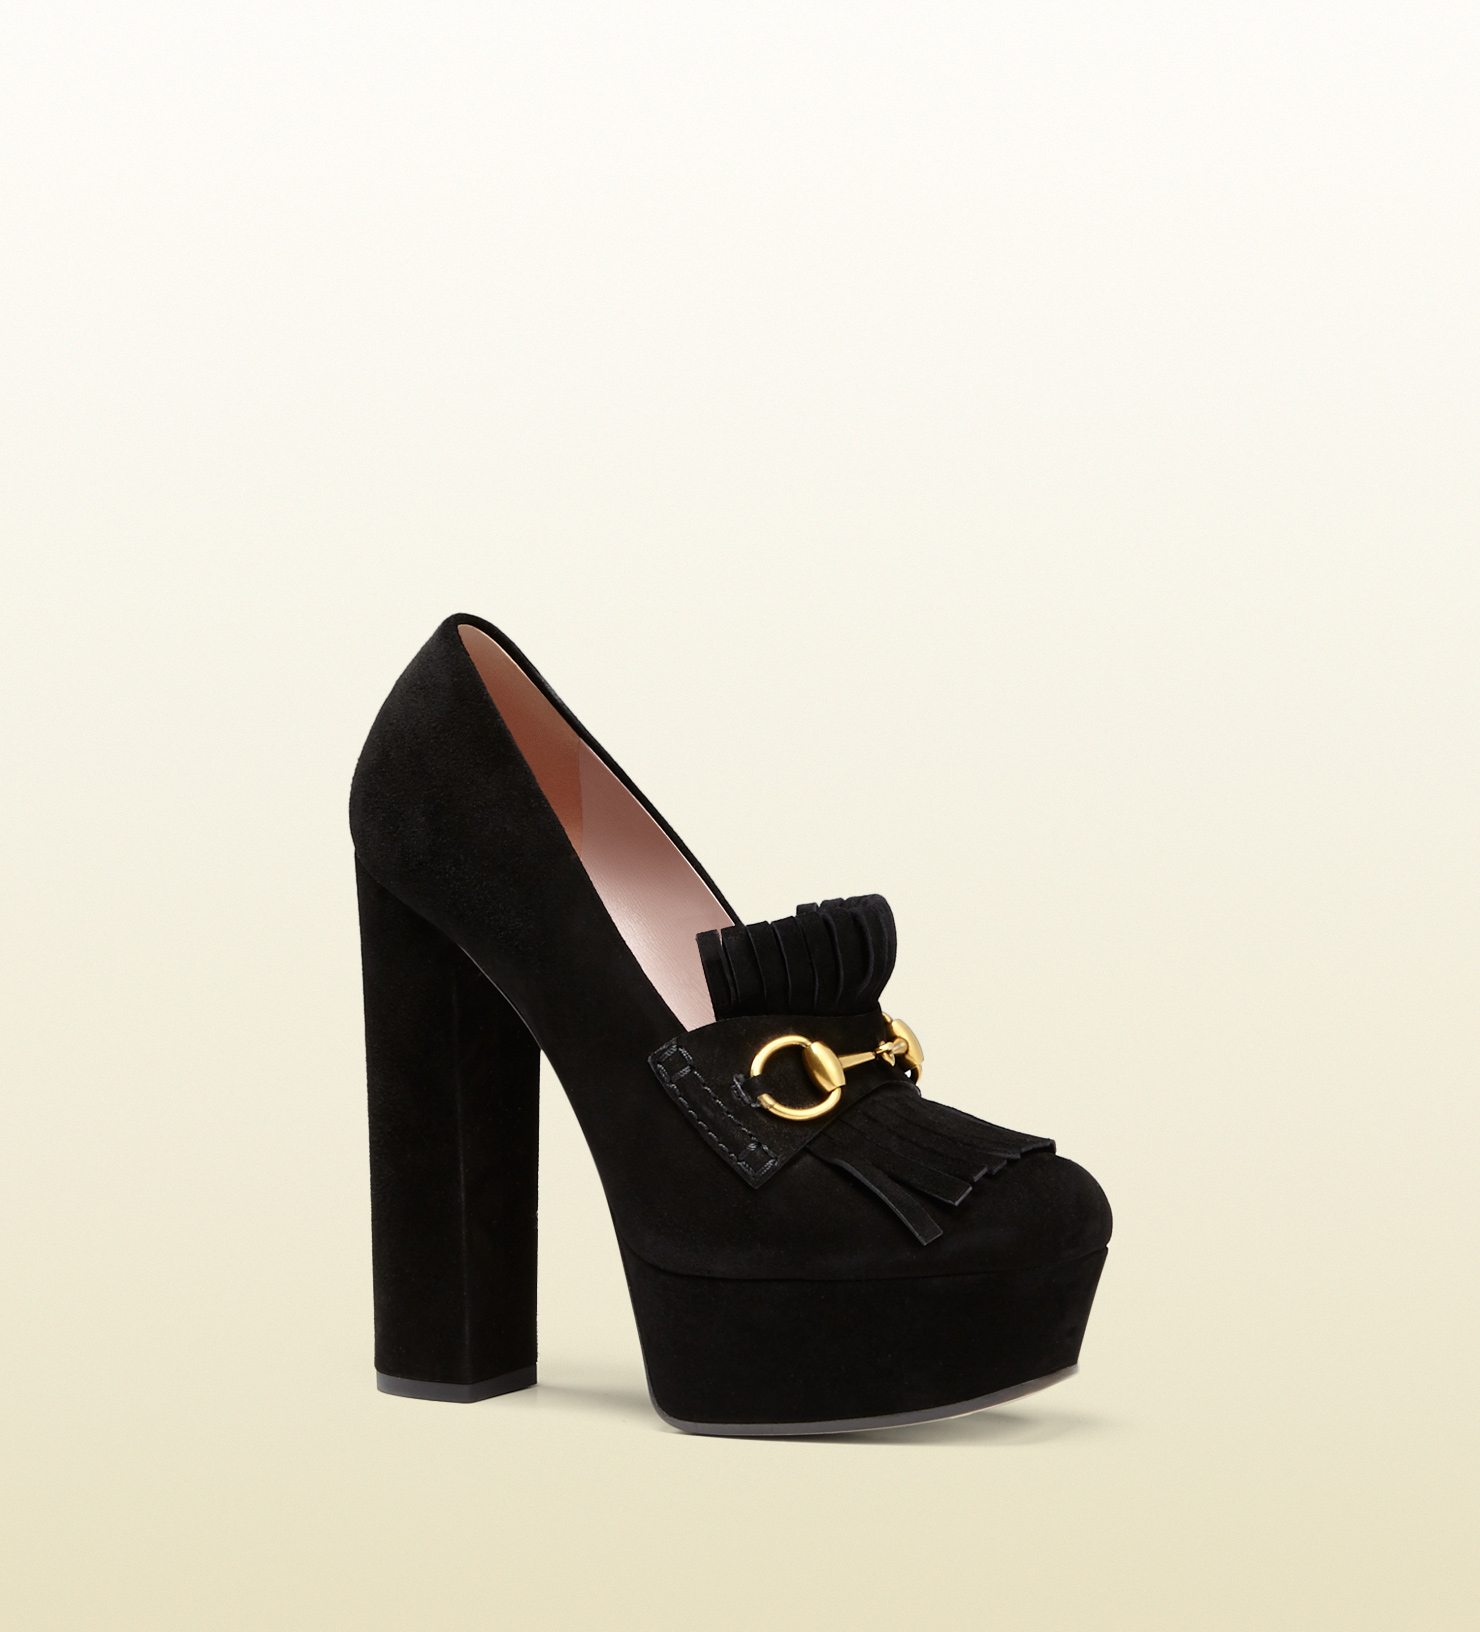 0bf3ab1d77482 Lyst - Gucci Suede Fringed Horsebit Loafer Pump in Black